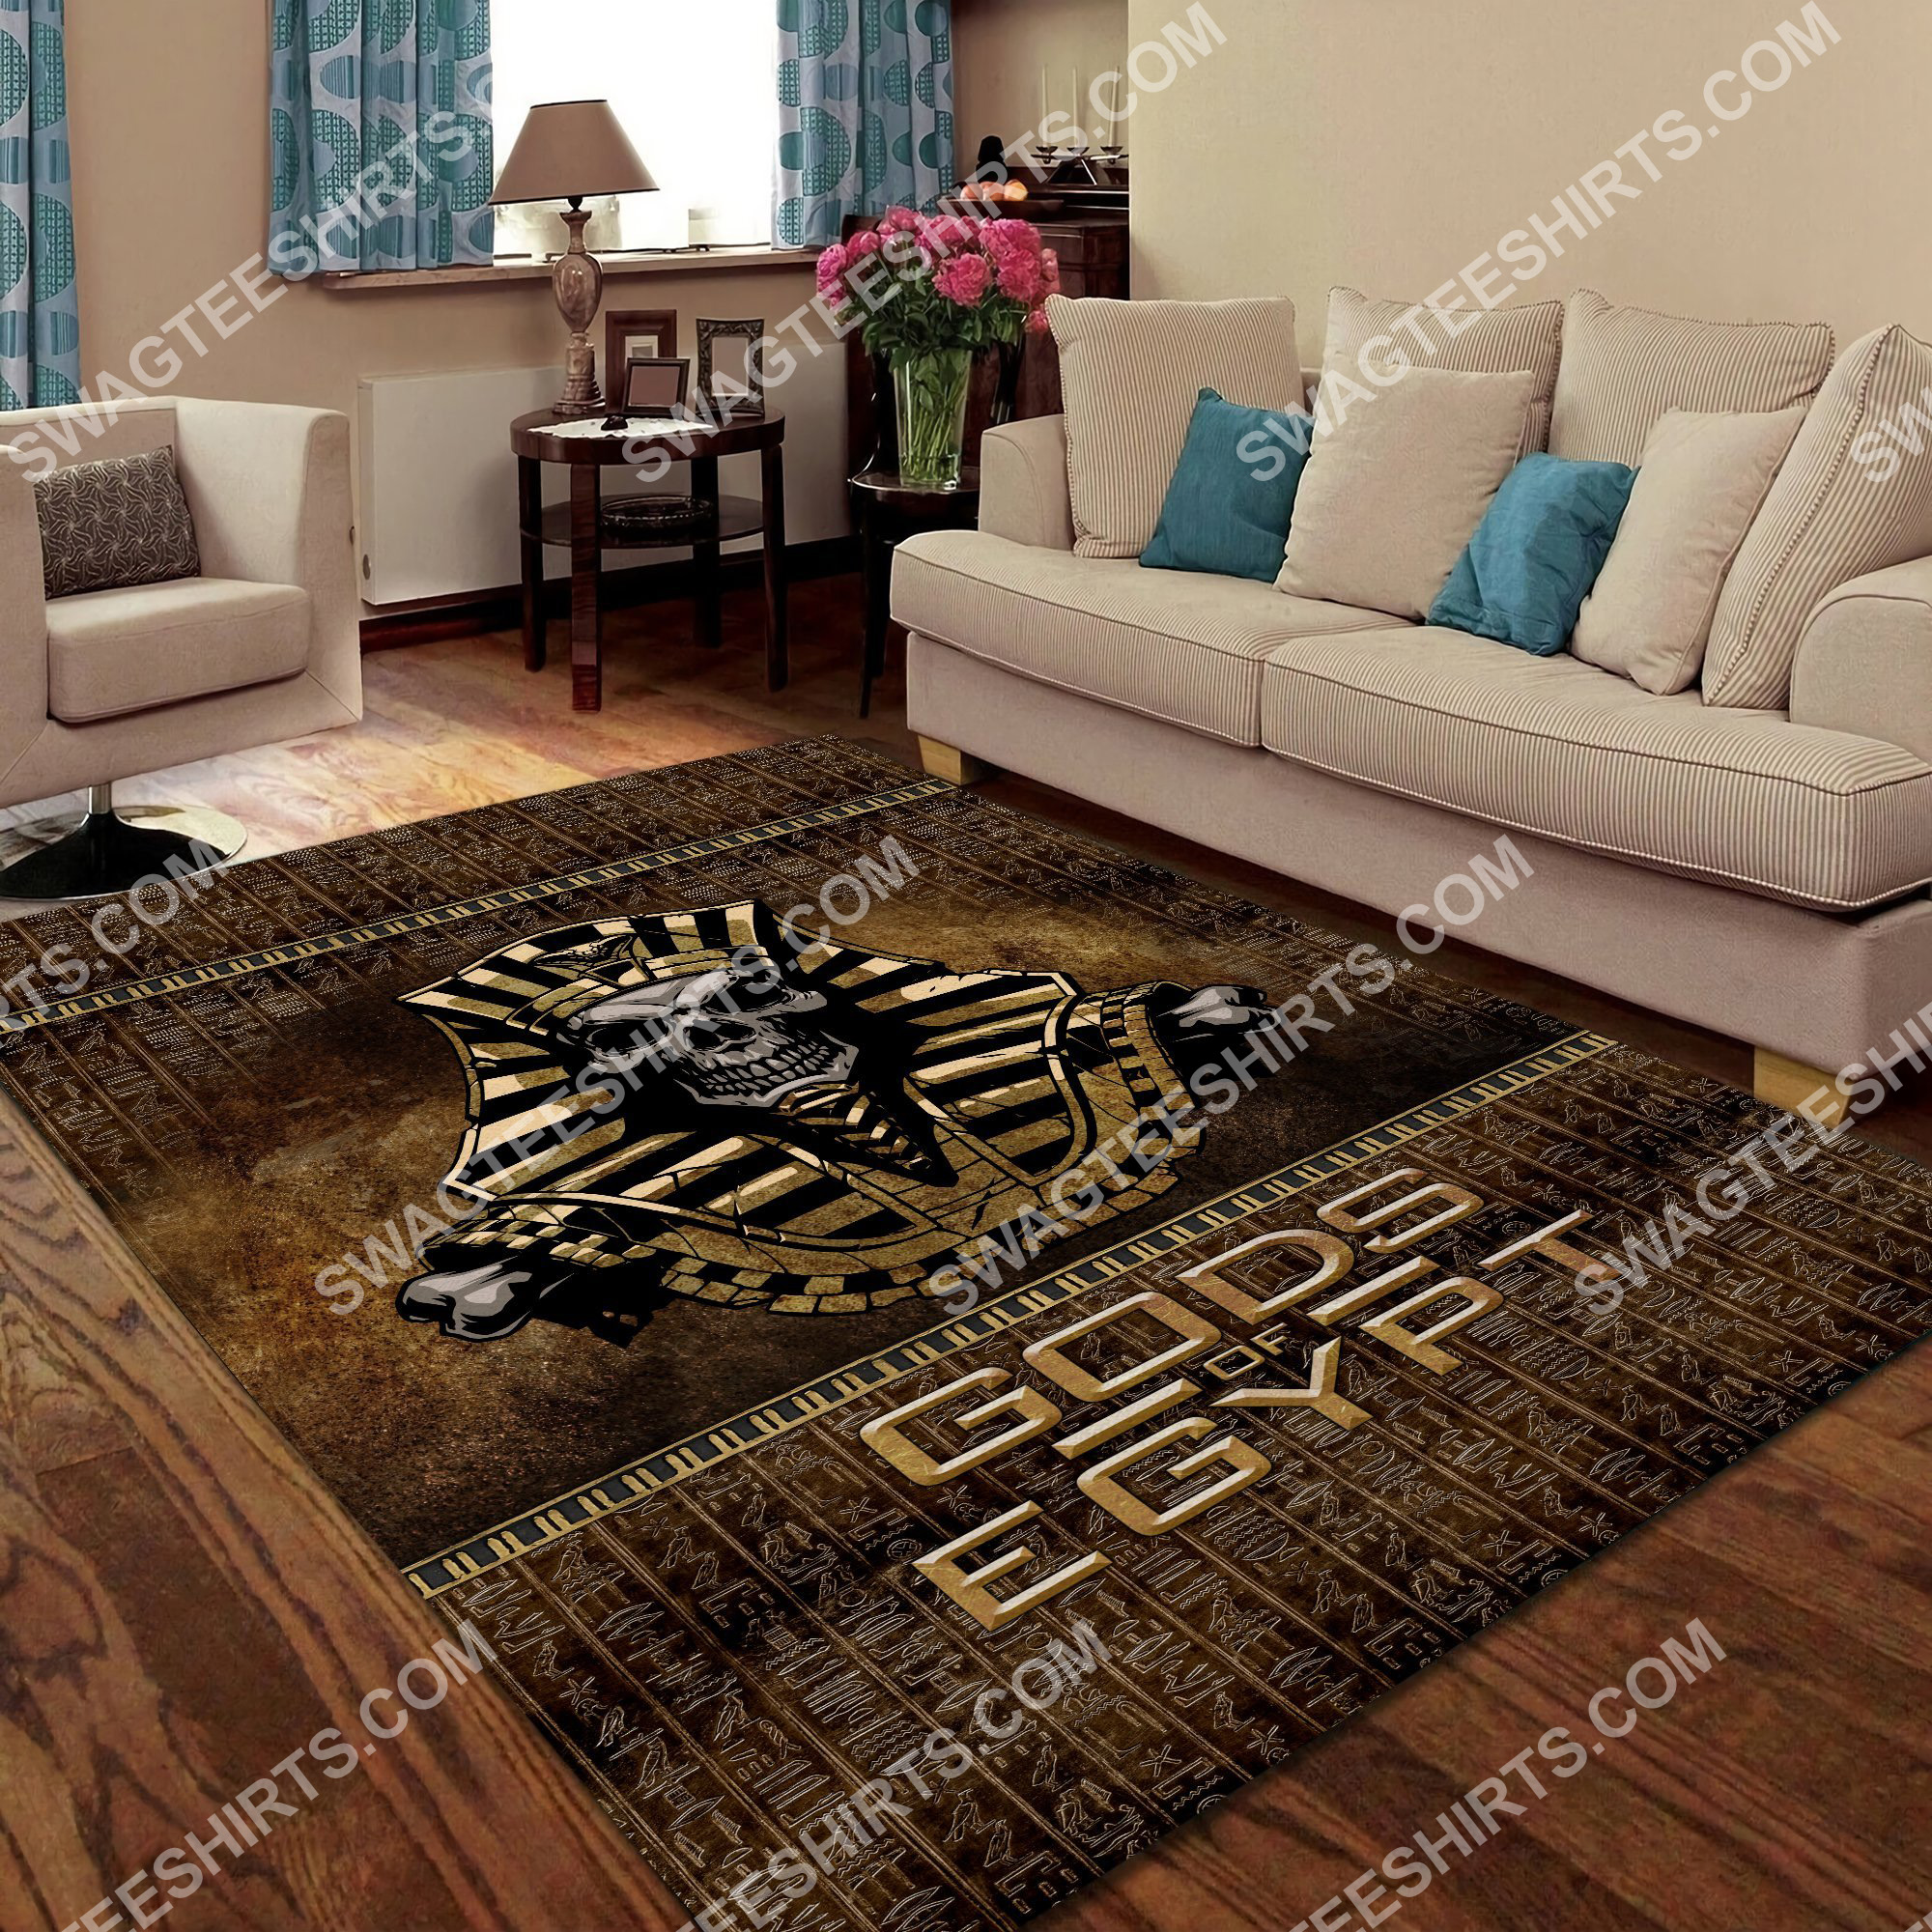 the skull Gods of egypt culture all over printed rug 4(1)